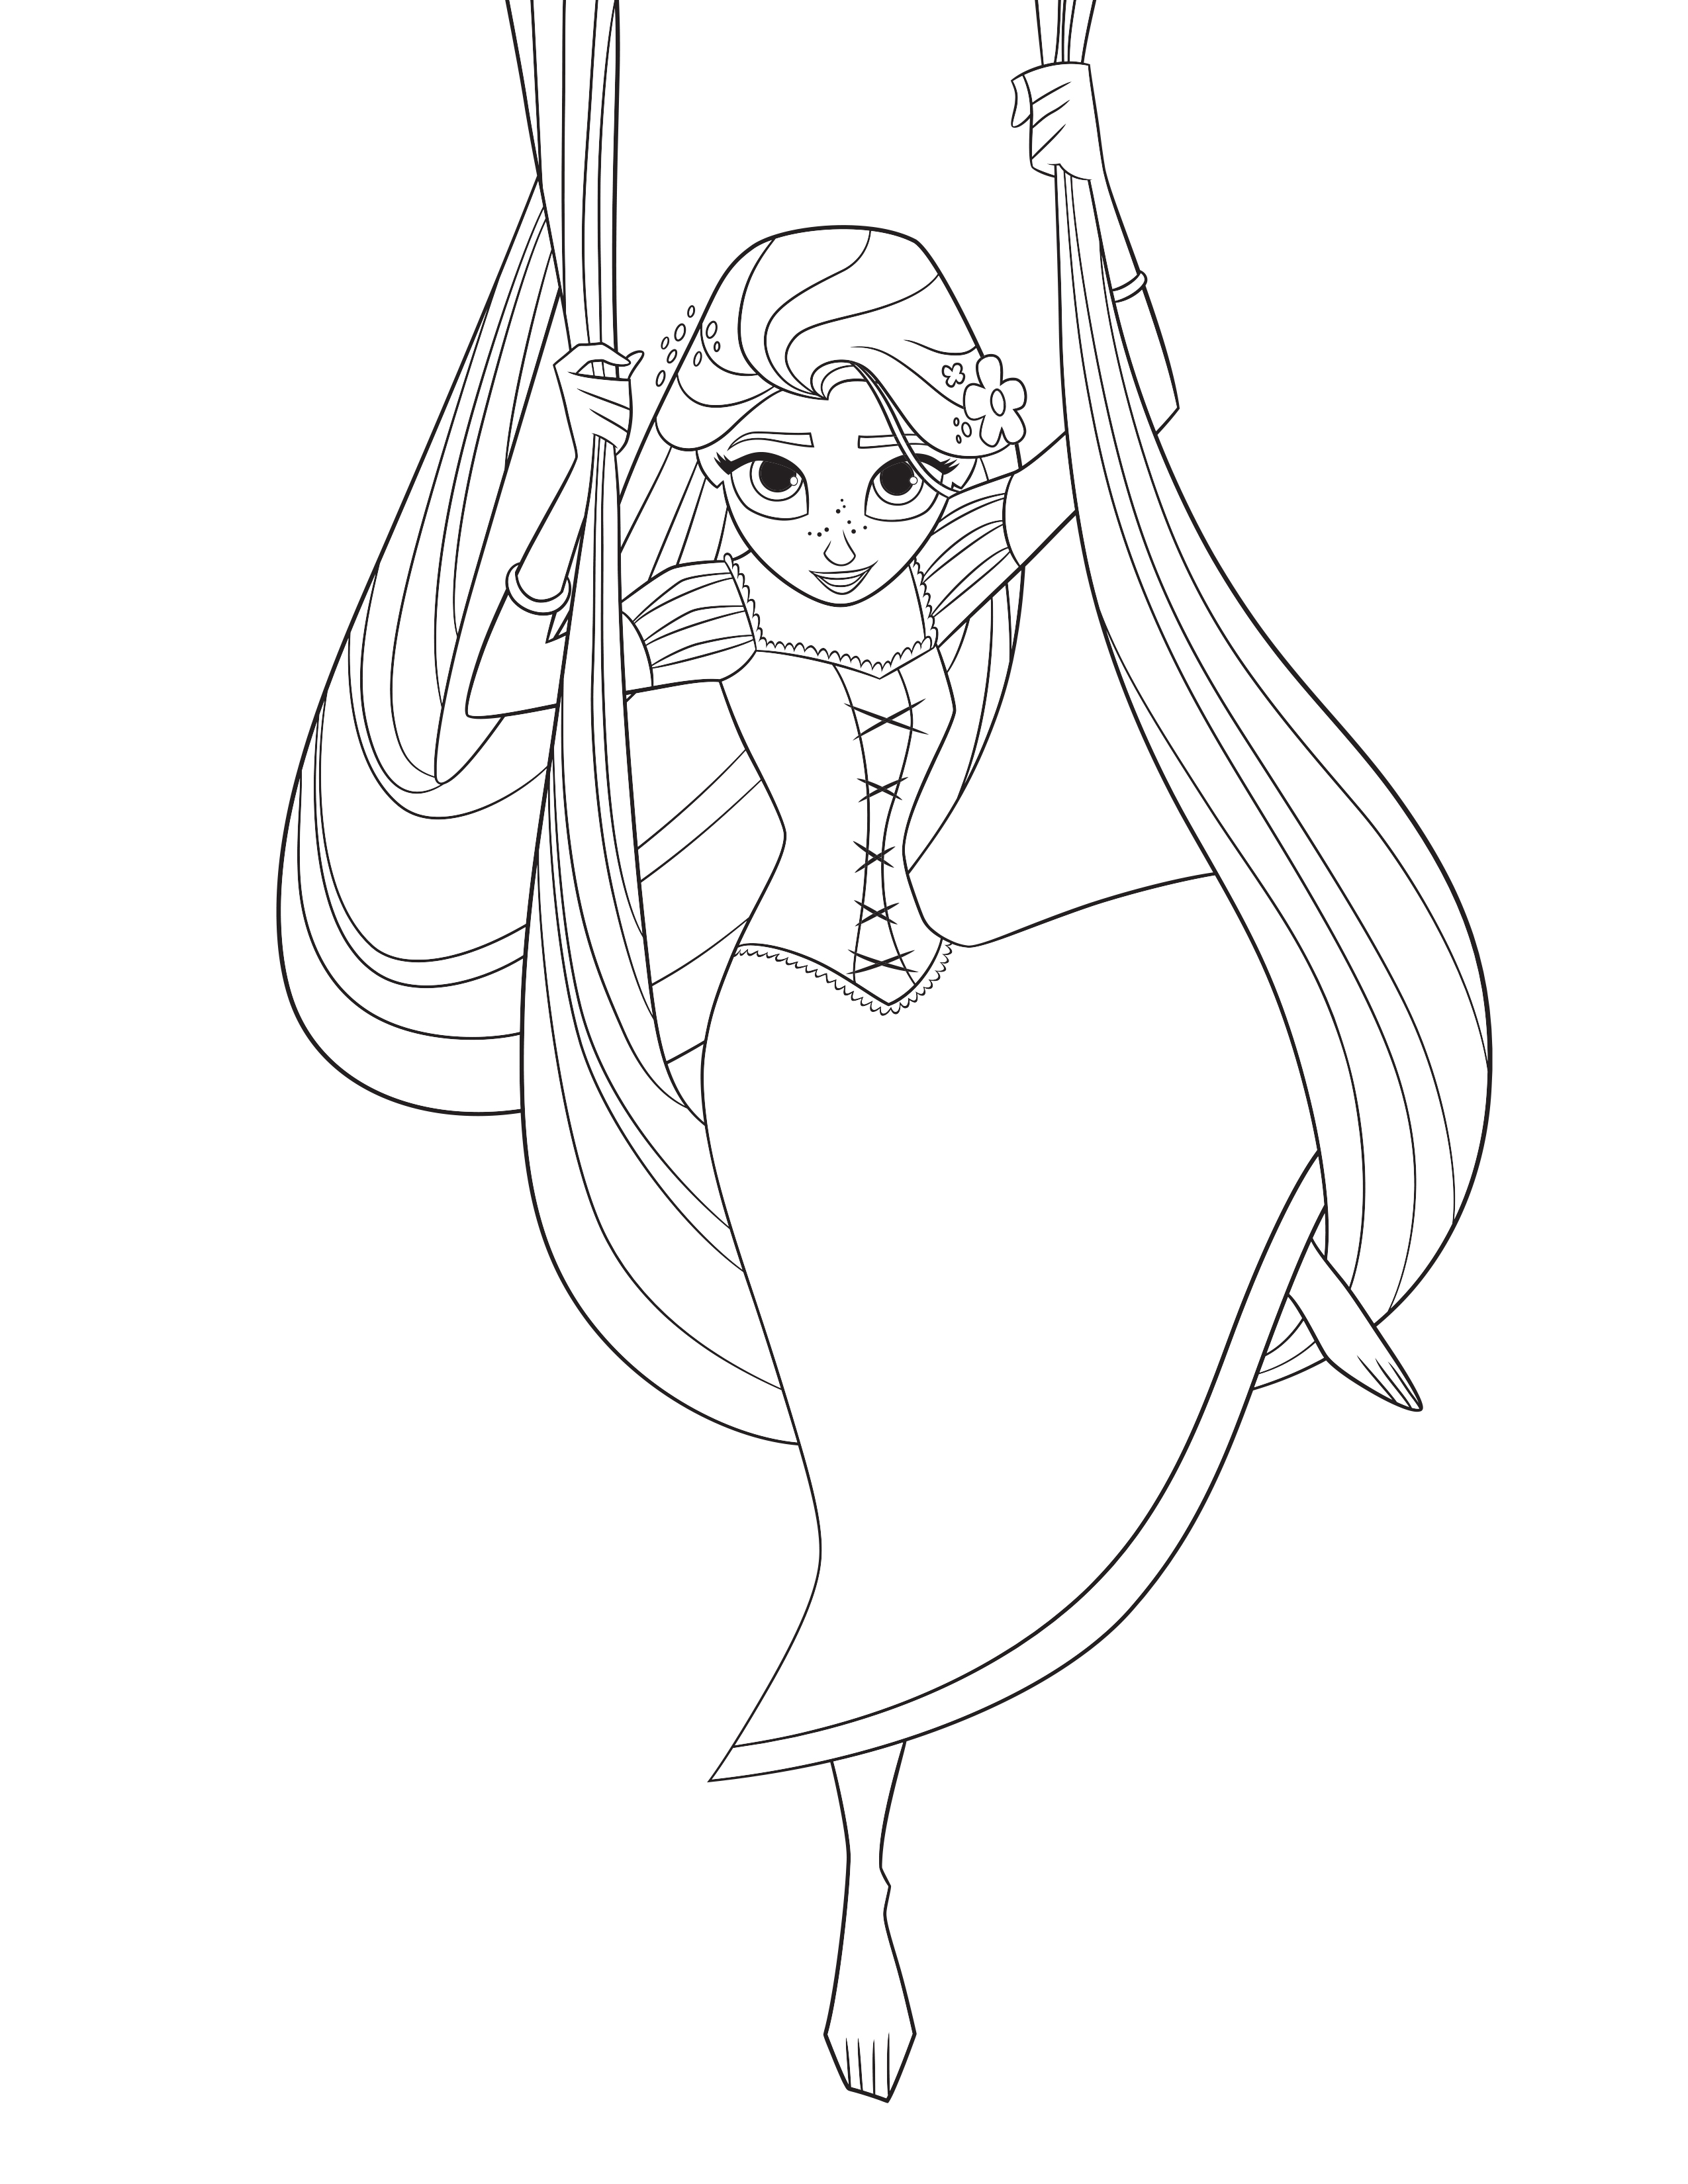 2550x3300 Shrewd Lolirock Coloring Pages Tangled The Ser